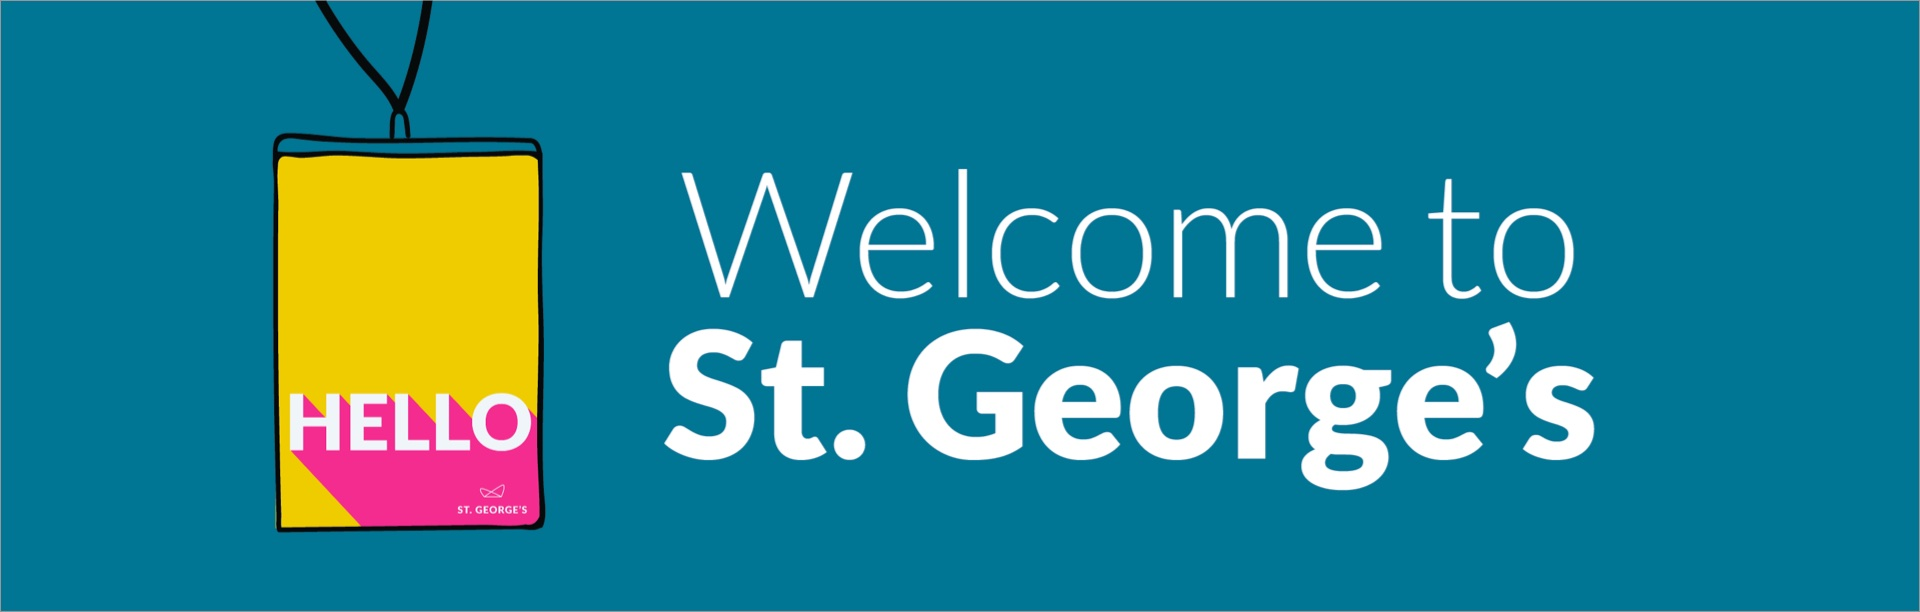 Welcome to St. George's